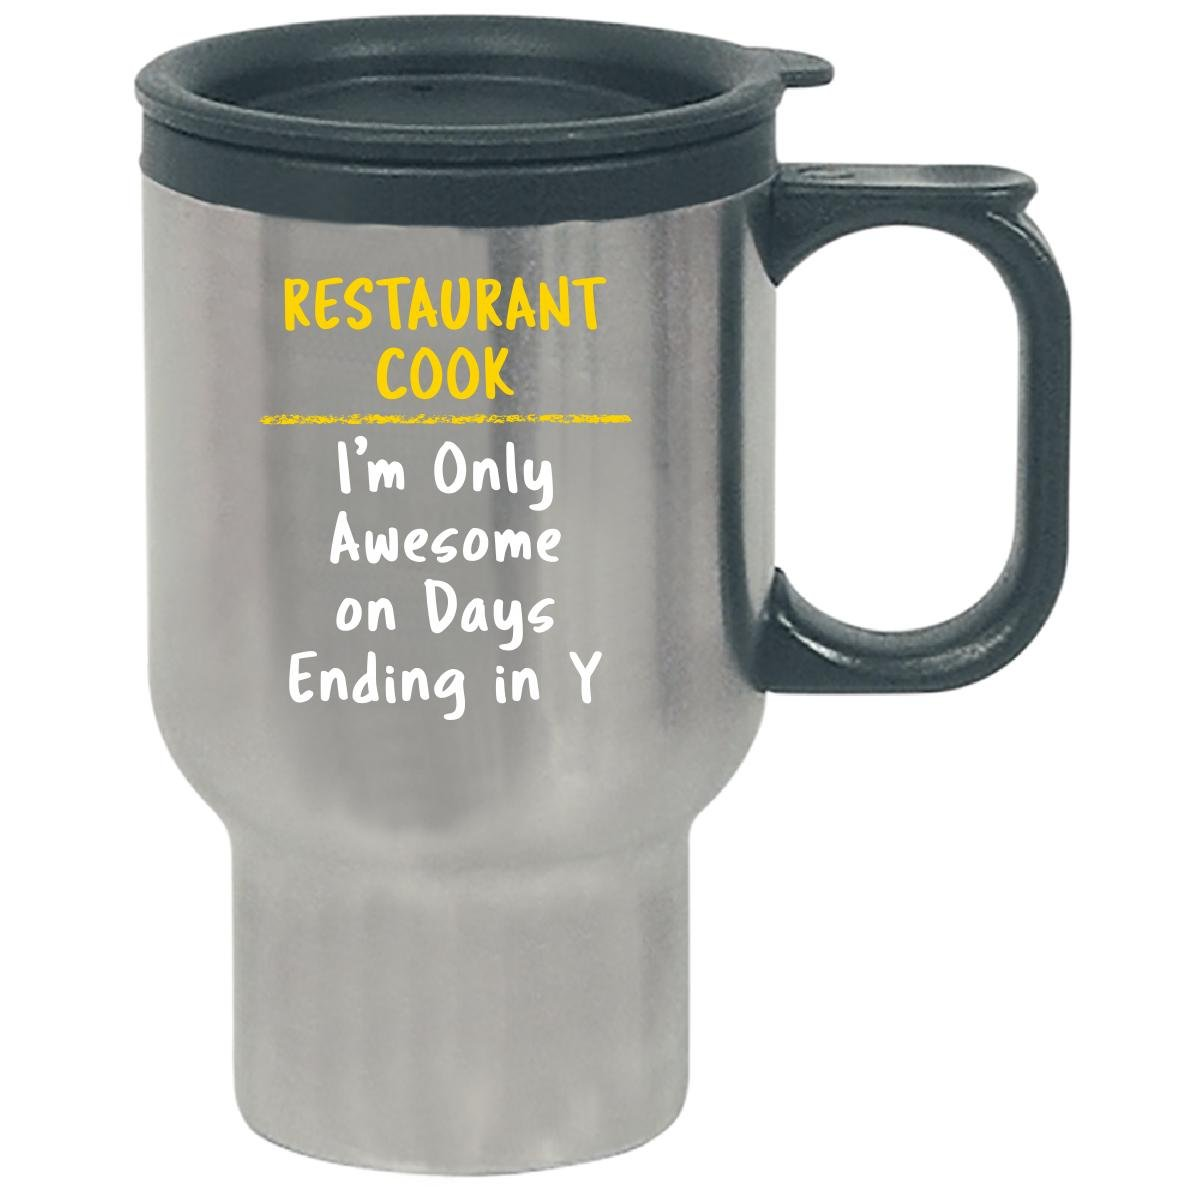 Restaurant Cook Awesome Sarcastic Funny Saying Office Gift - Travel Mug